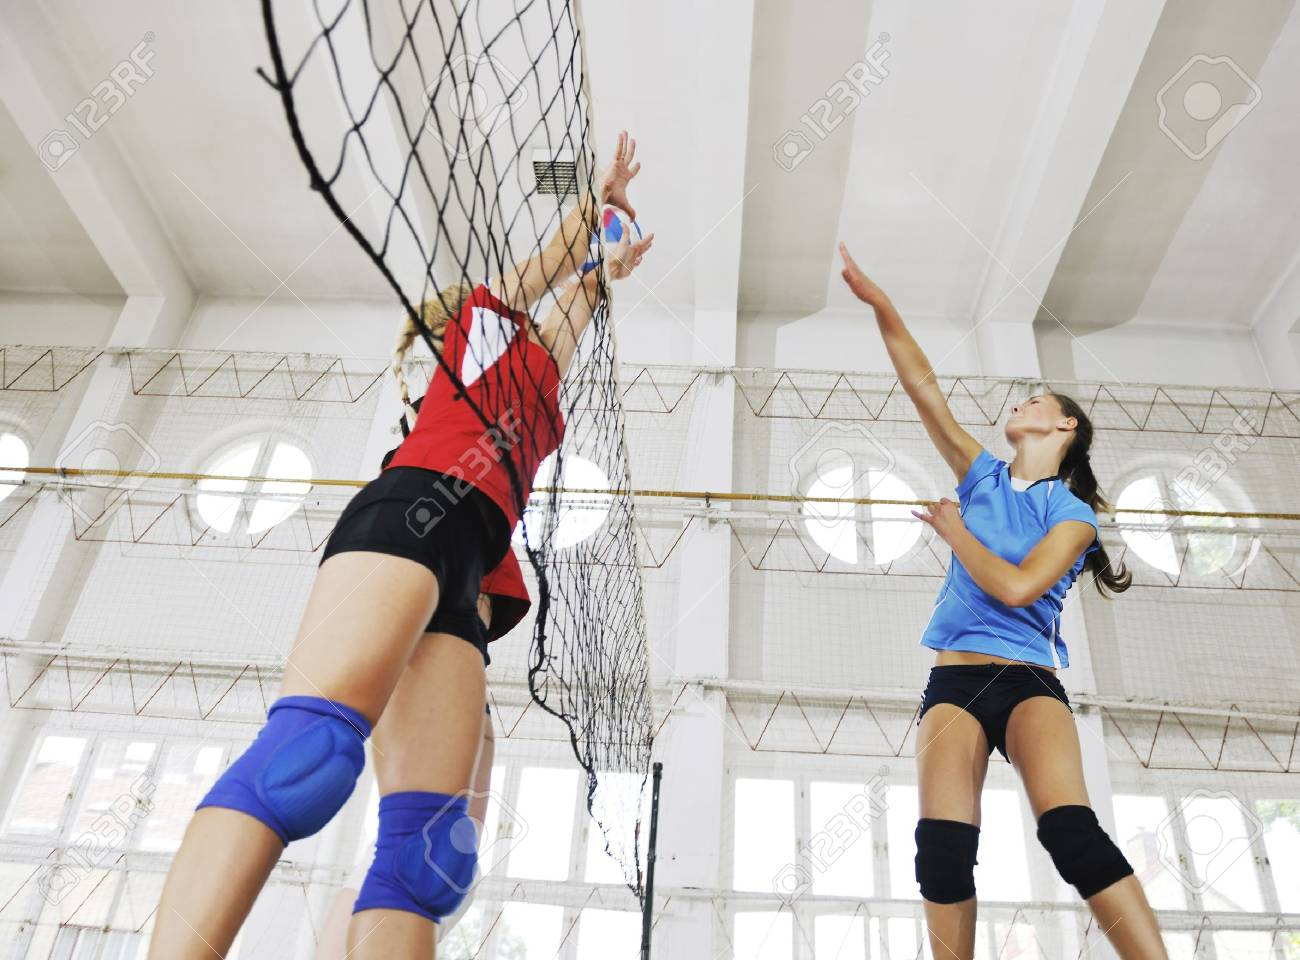 volleyball game sport with group of young beautiful  girls indoor in sport arena Stock Photo - 7822502